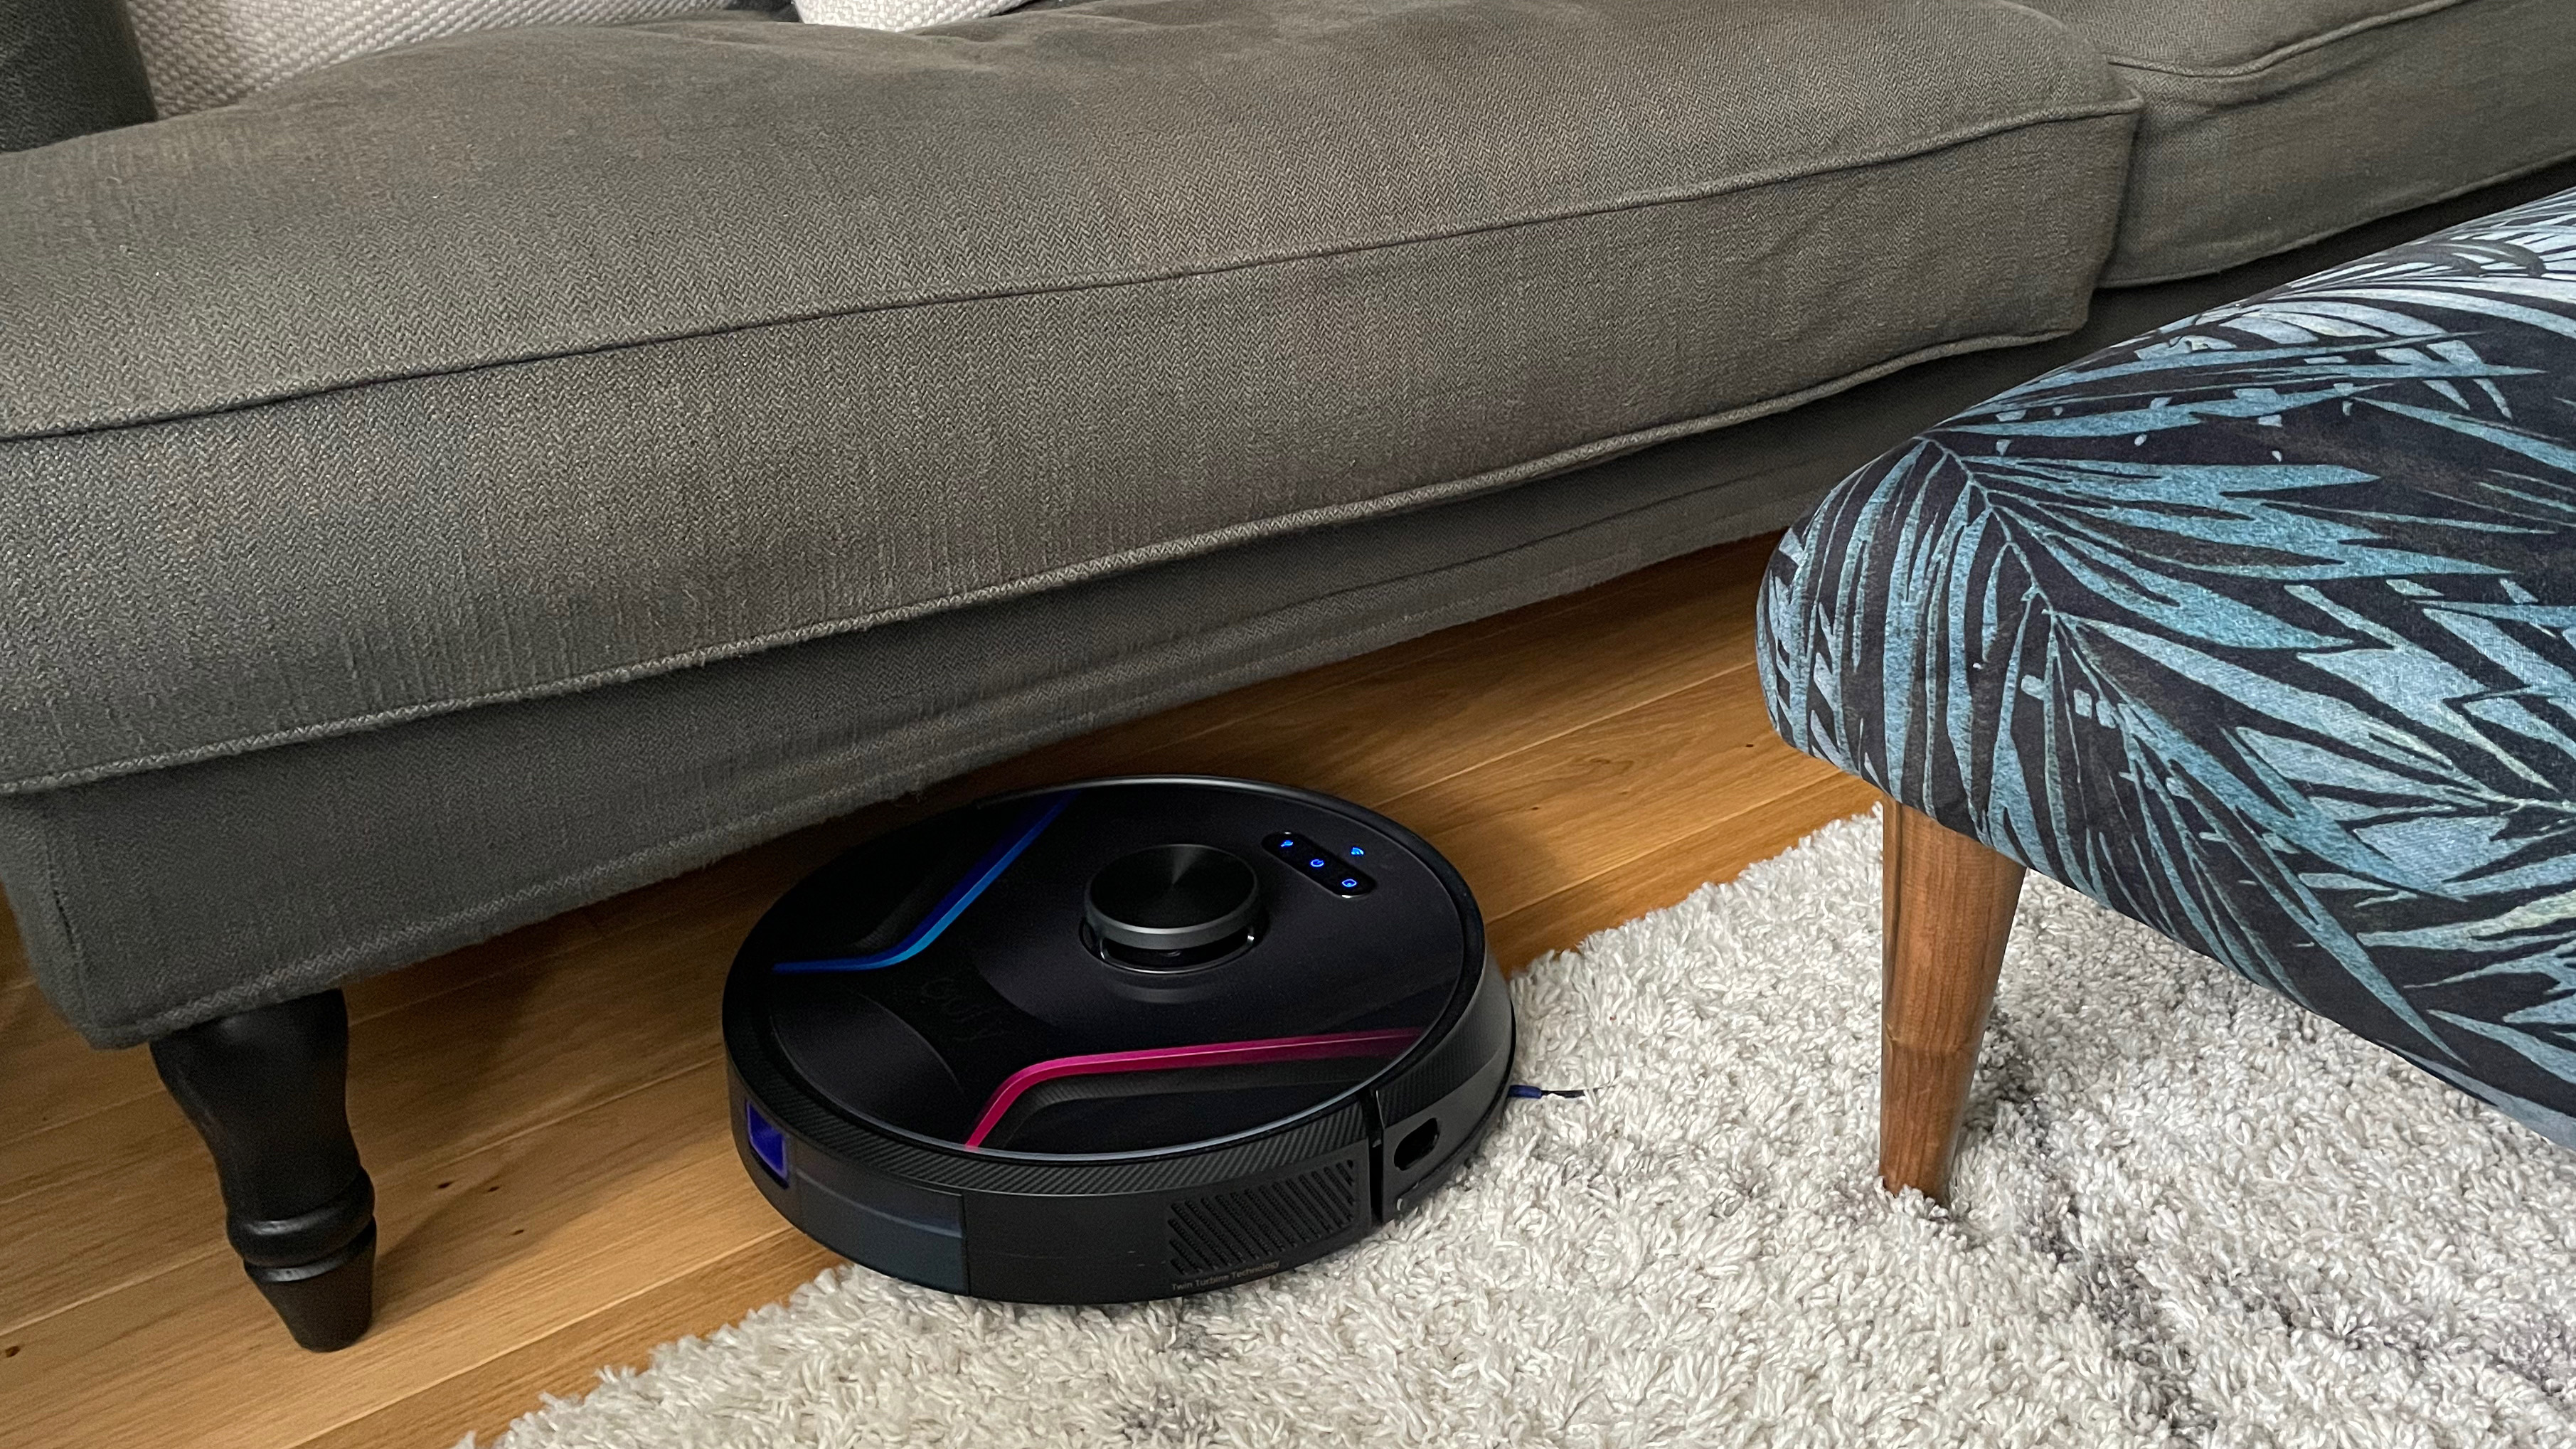 The Eufy RoboVac X8 cleaning a rug on a hard floor surrounded by furniture